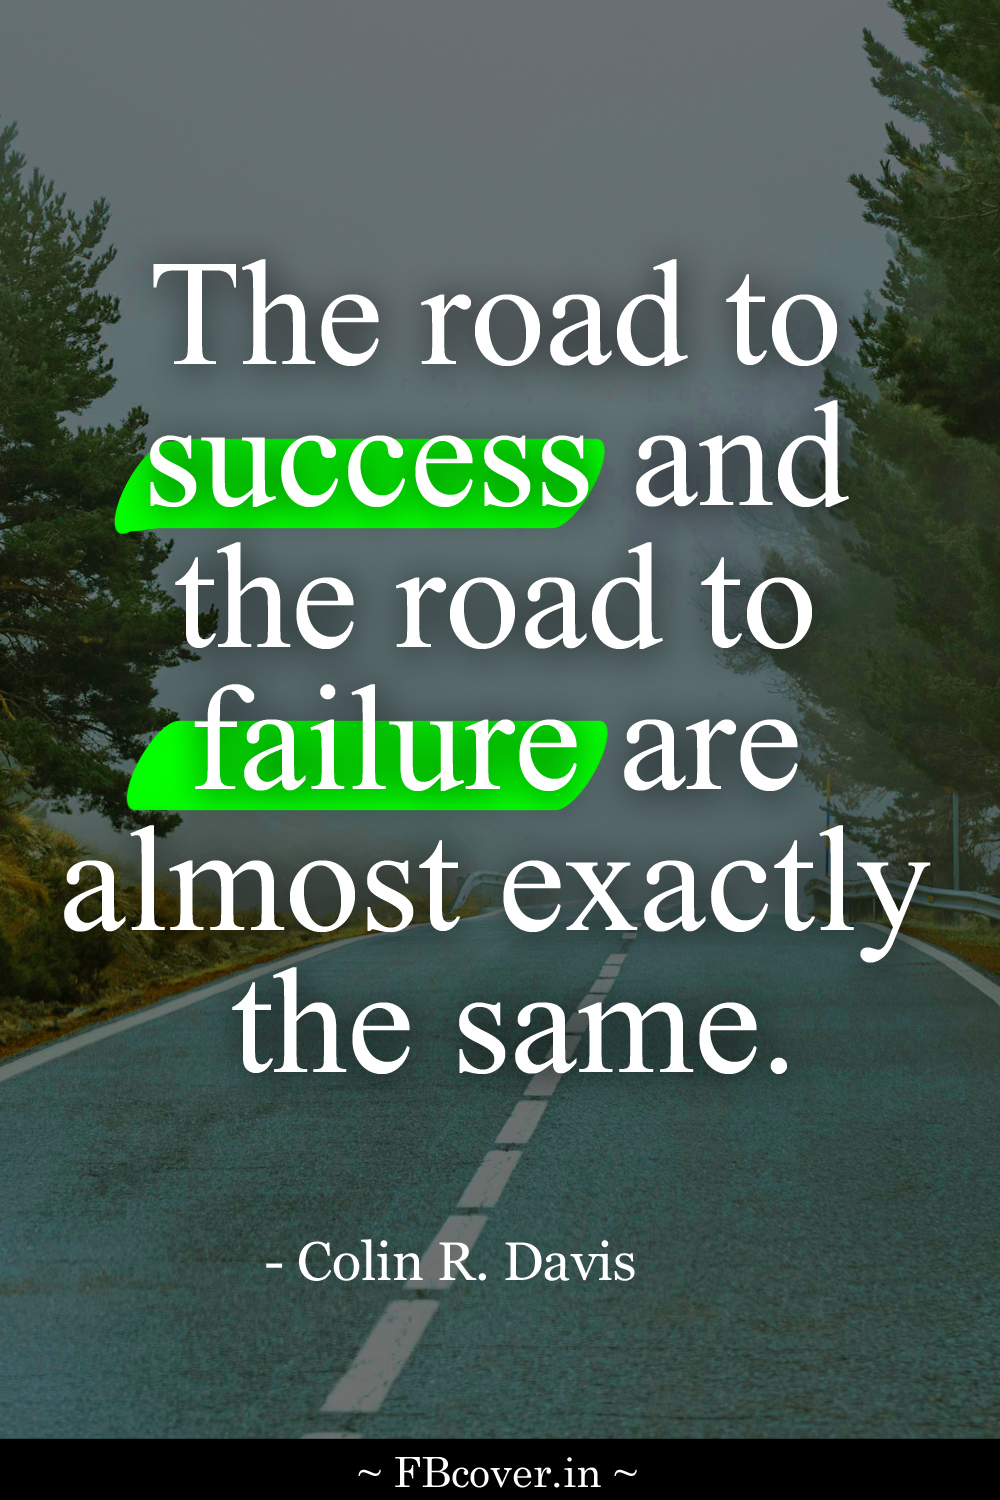 the road to success quotes, colin r davis quotes